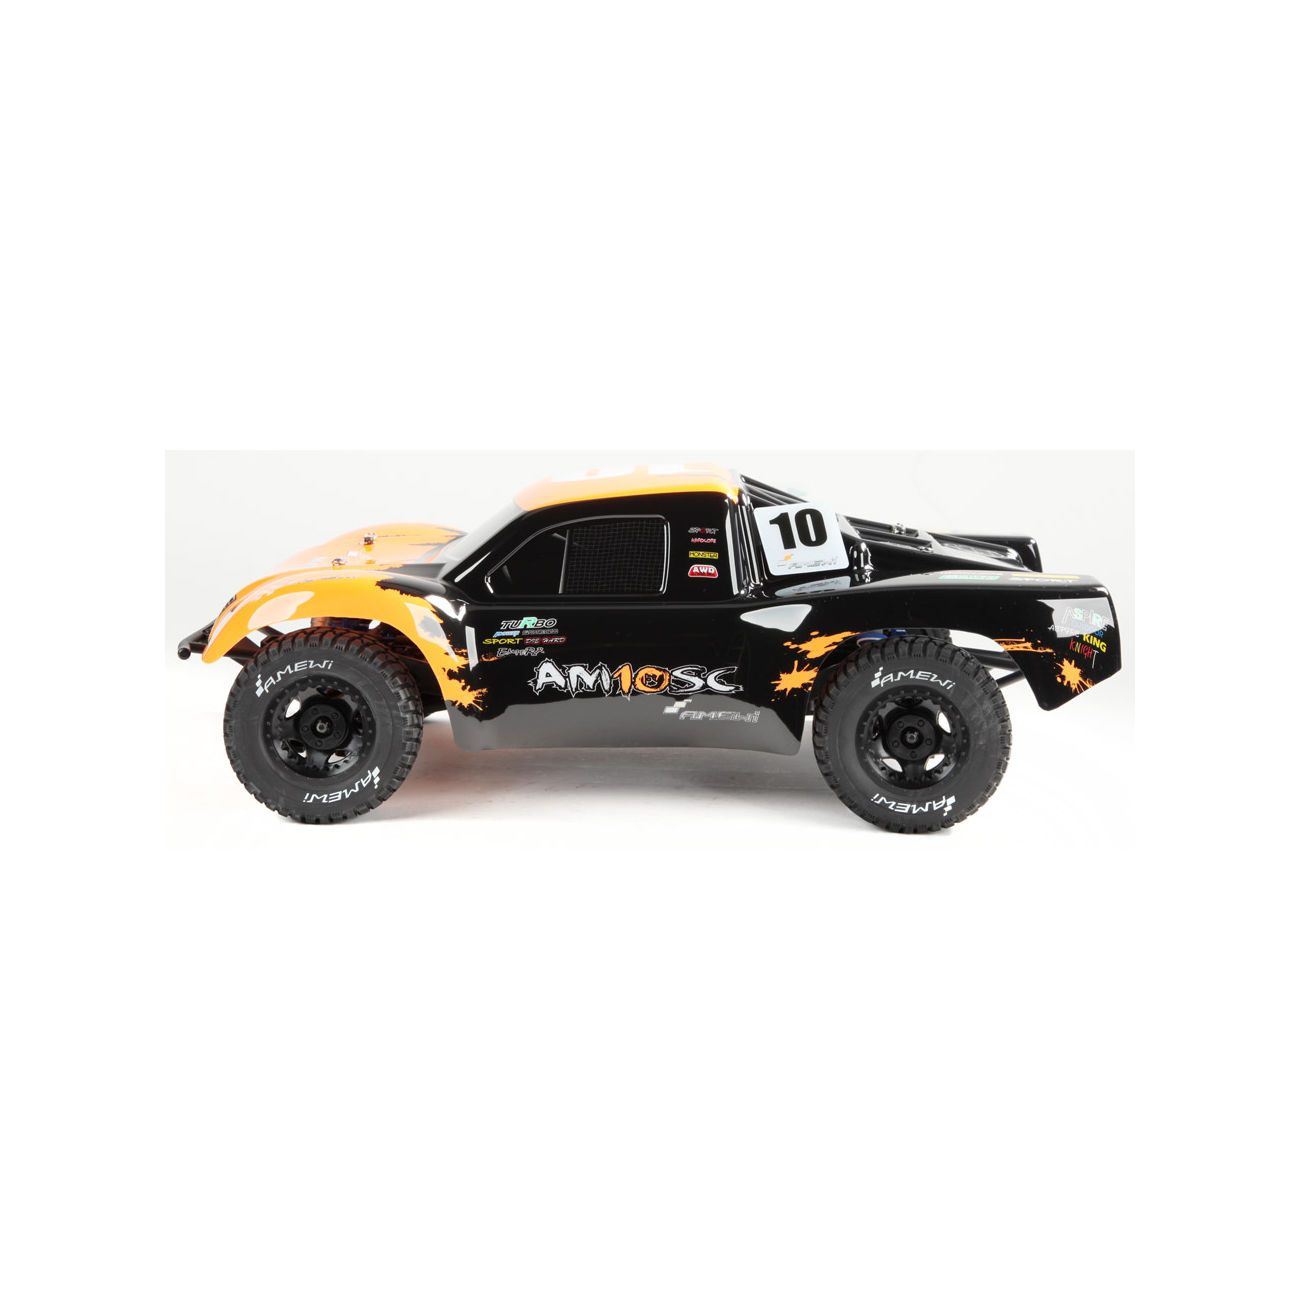 Amewi 1:10 AM10SC V2 Brushless 4WD Short Course Truck 2,4 GHz RTR Set 22139 1